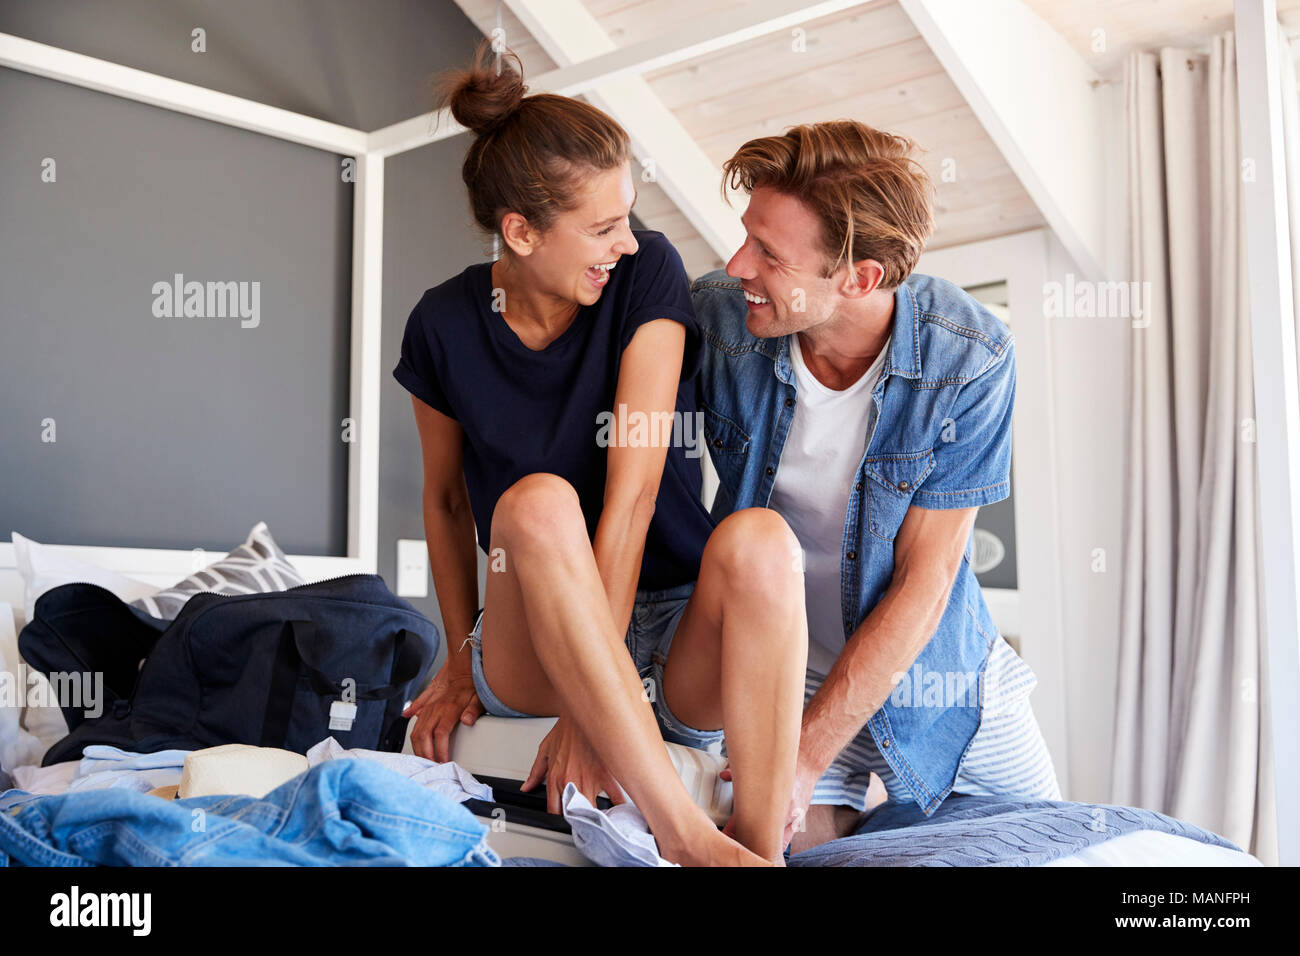 Couple Trying To Close Full Holiday Suitcase In Bedroom Stock Photo